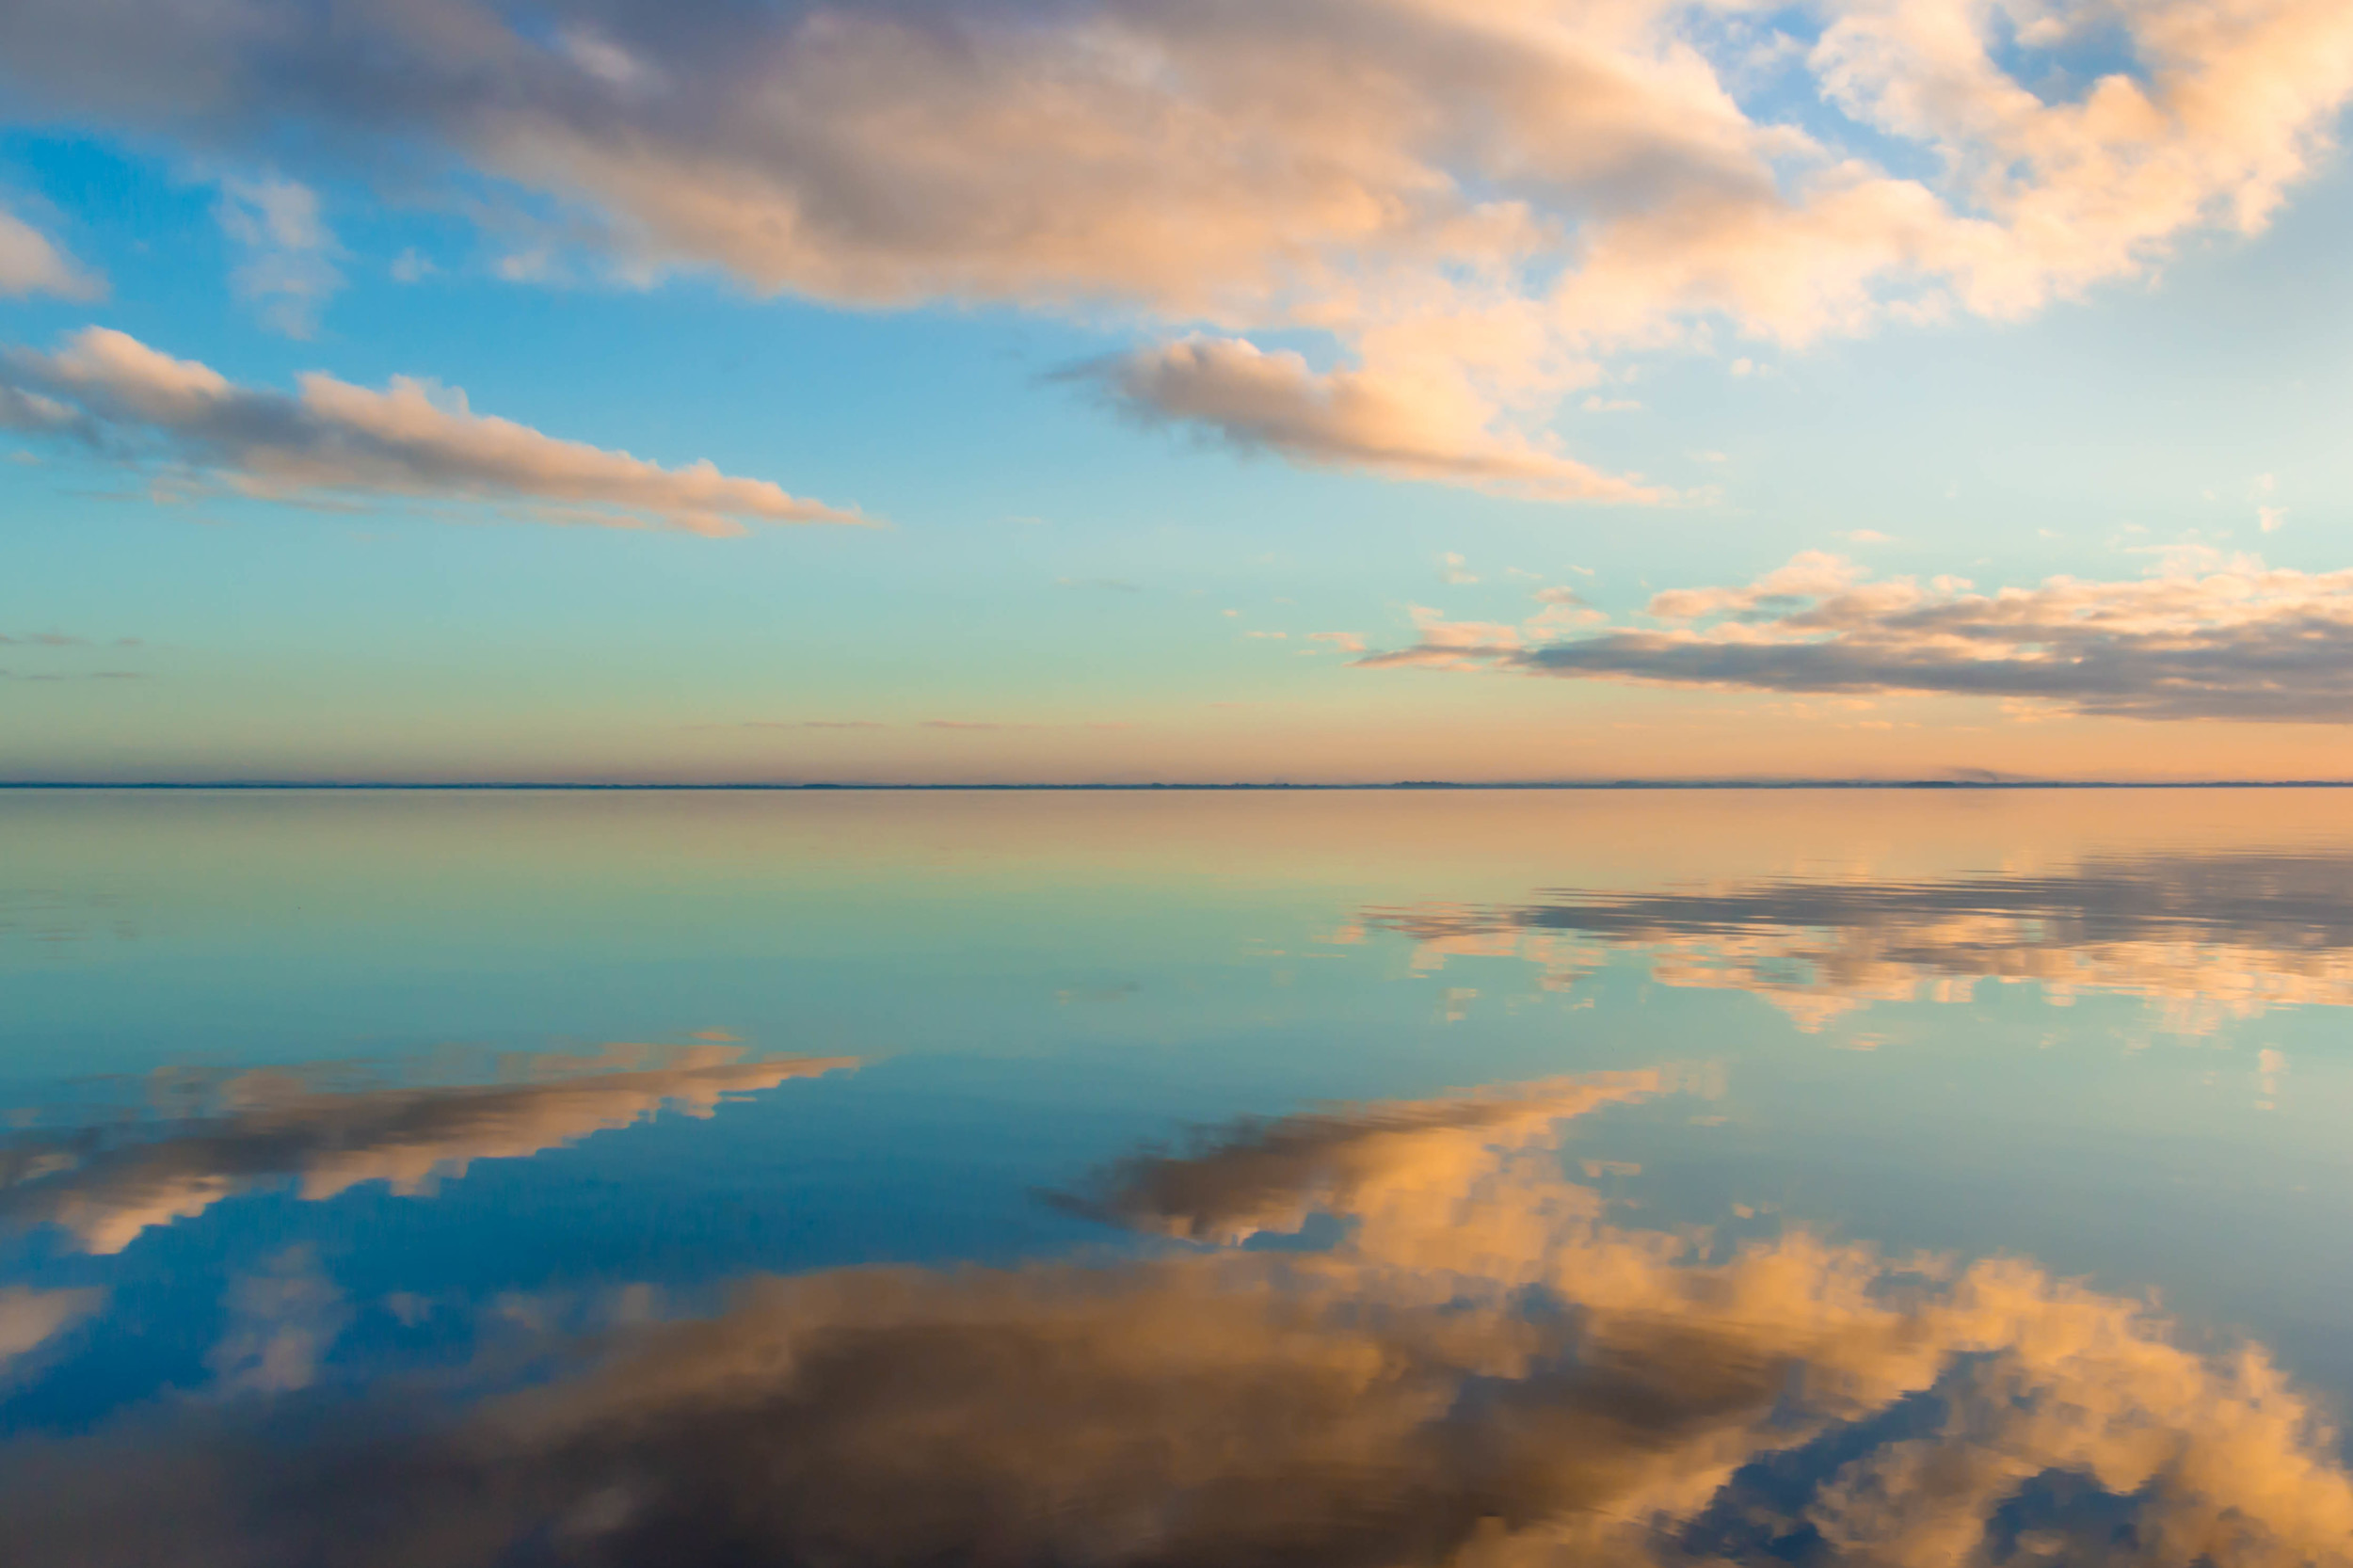 Lough Neagh Reflections